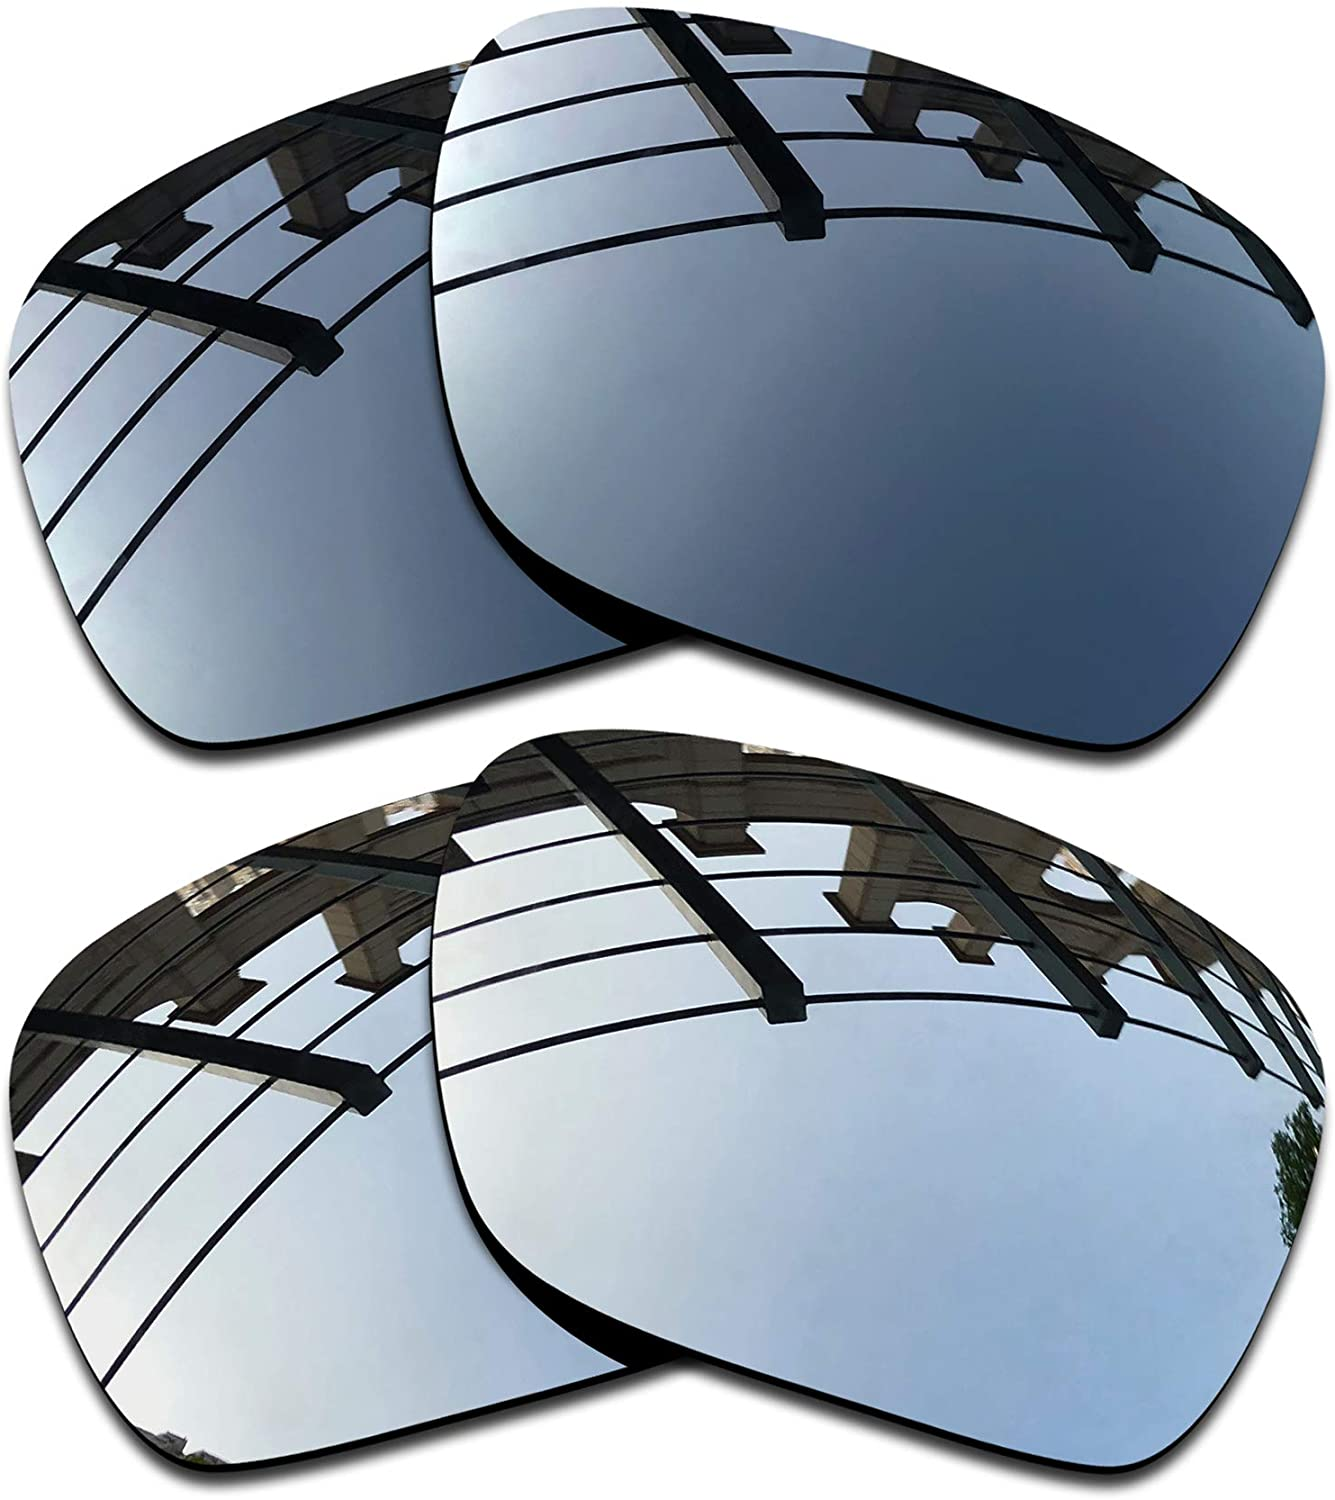 SEEABLE Premium Polarized Mirror Replacement Lenses for Oakley Ten OO9128 Sunglasses